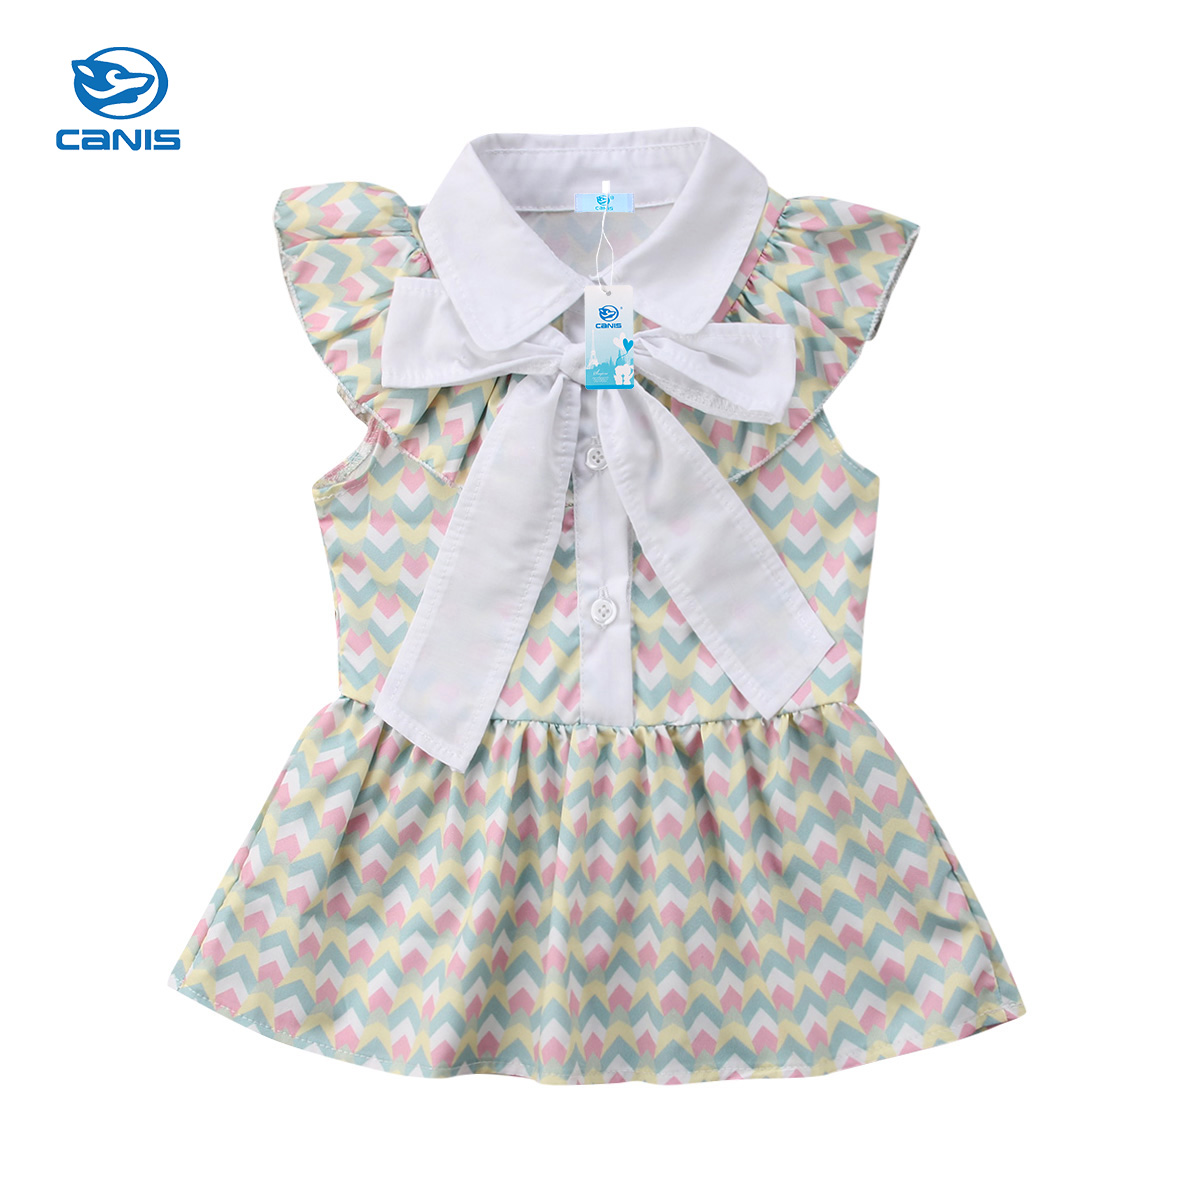 CANIS Lovely Girls Summer Clothe Toddler Kids Baby Girls Floral Bowknot Dress Party Pageant Formal Dress Sundress Clothes